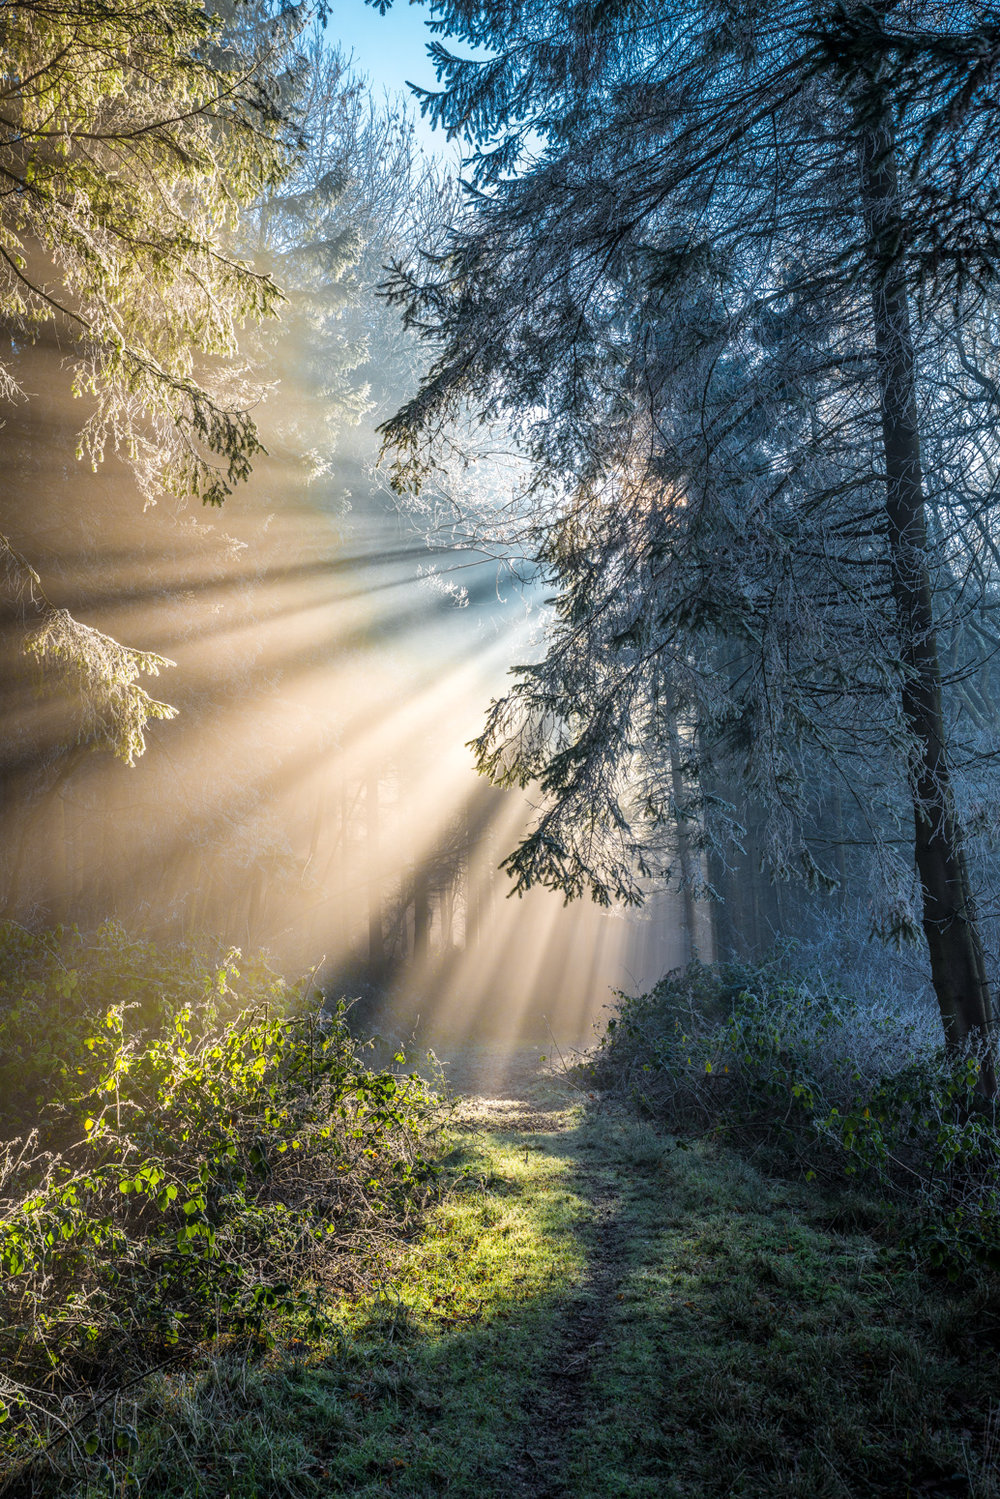 Misty woodland with sun's rays and hoar frost